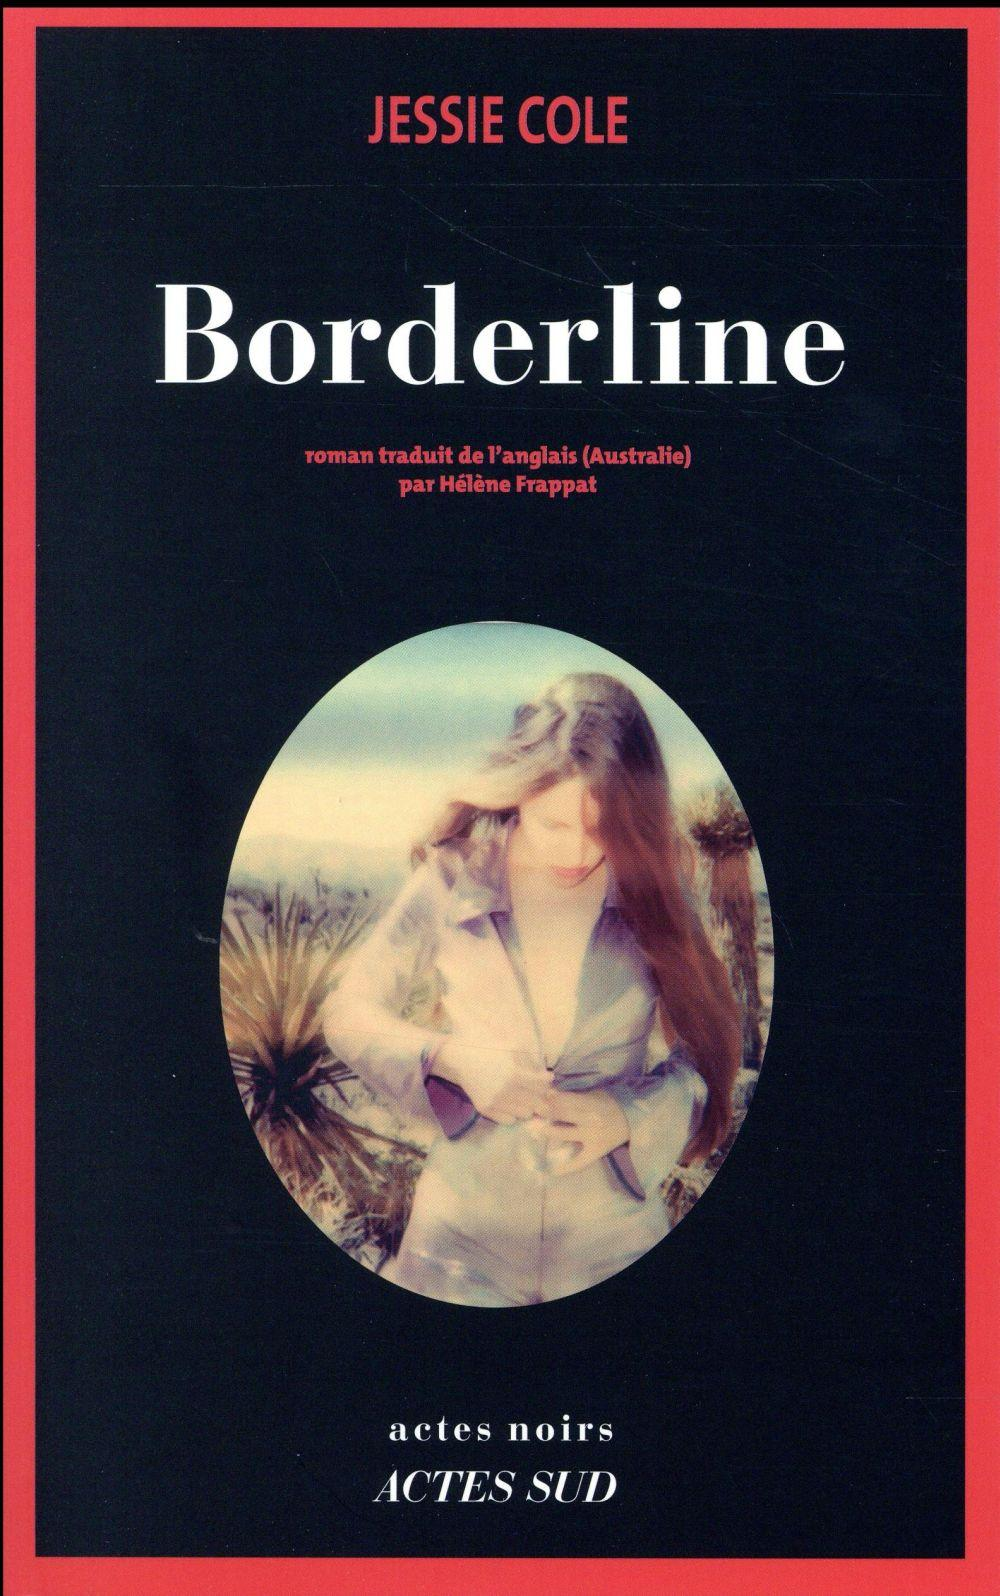 Vente Livre :                                    Borderline                                      - Jessie Cole